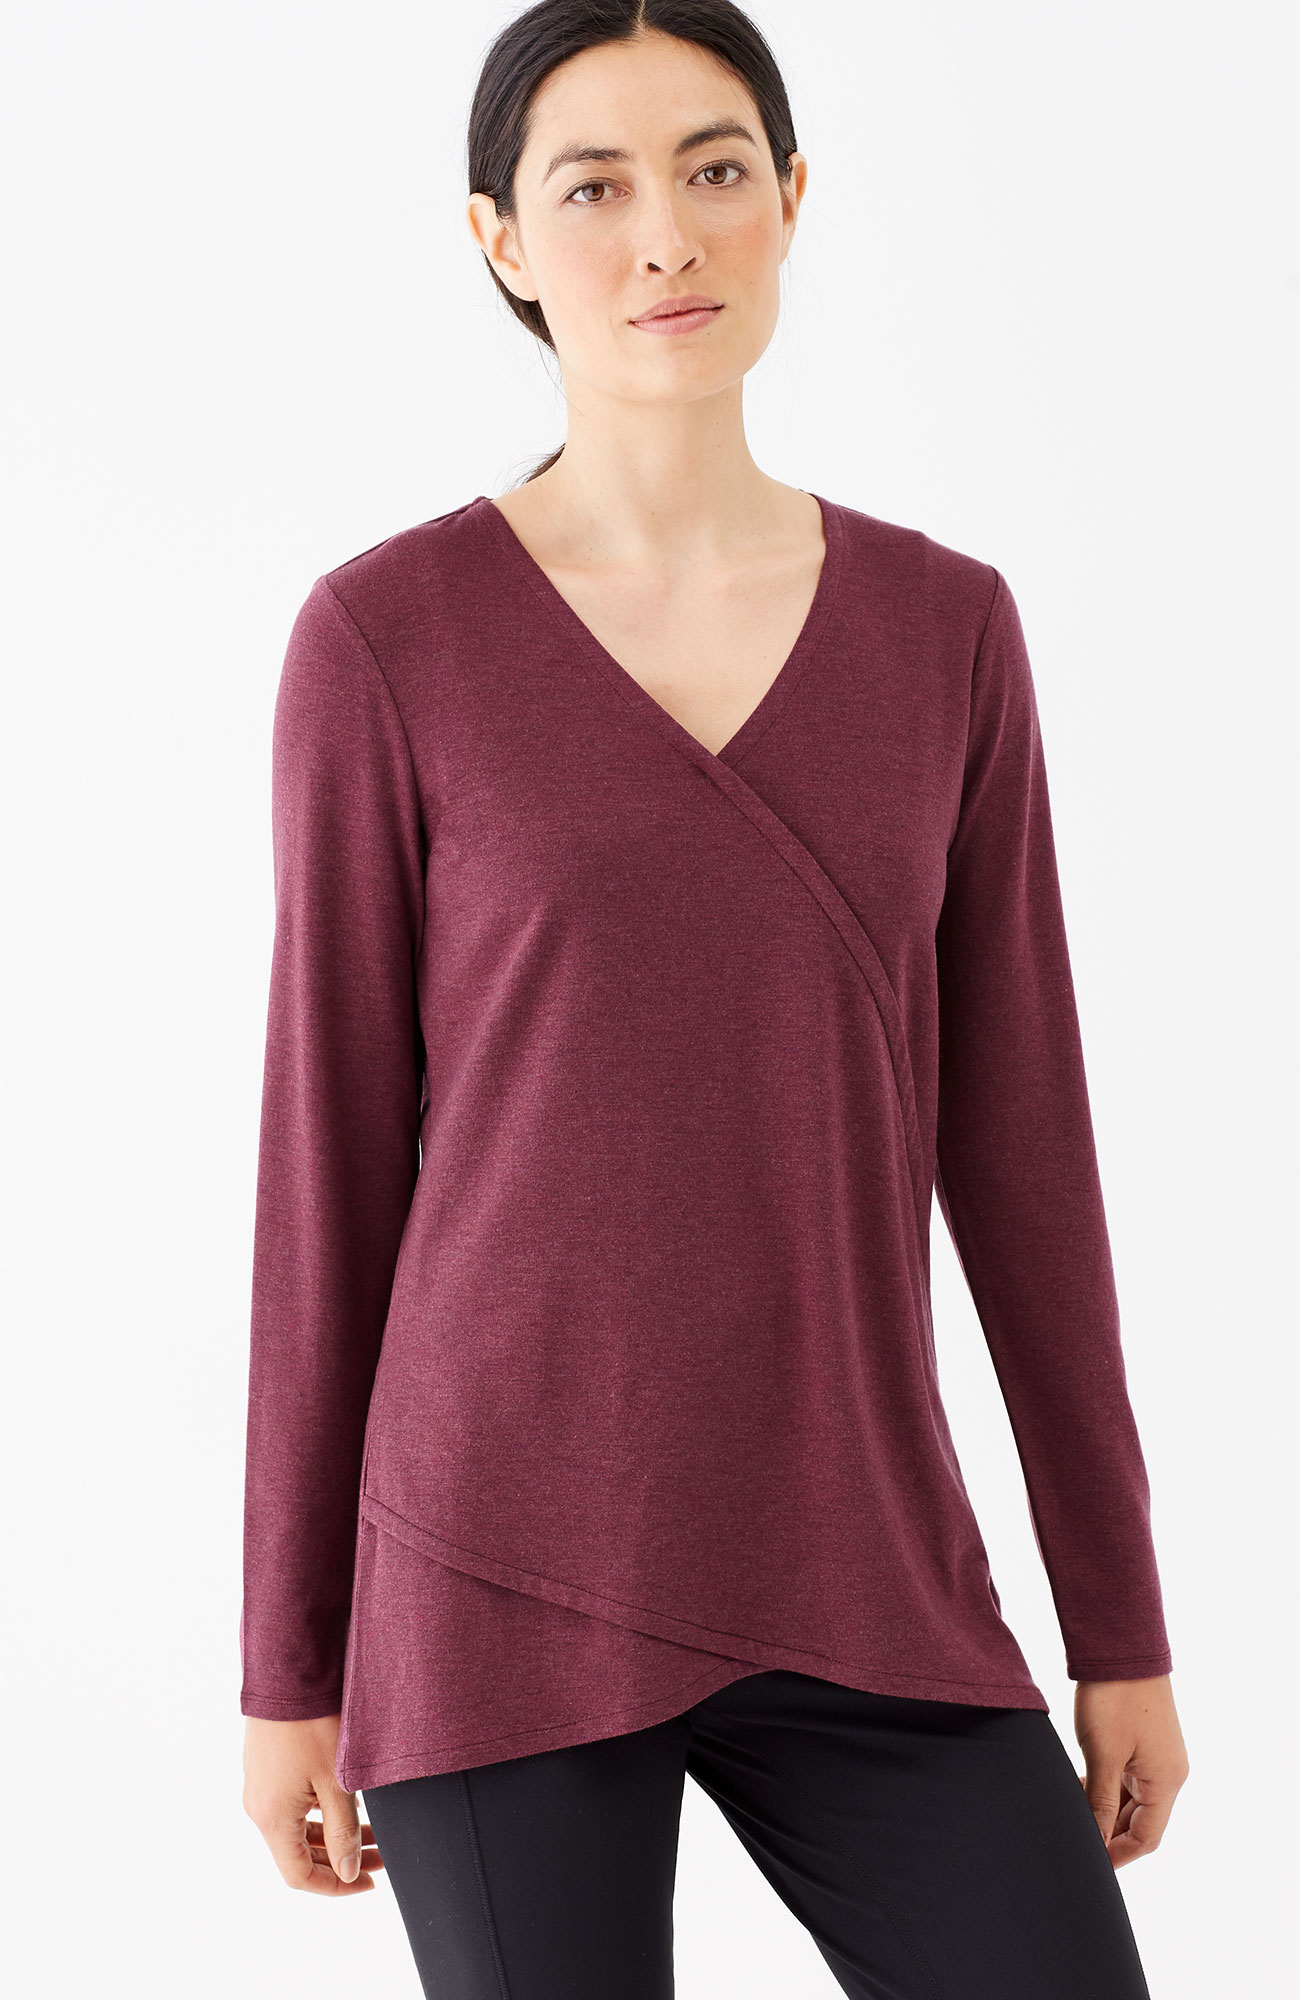 Pure Jill fit-wrap style top